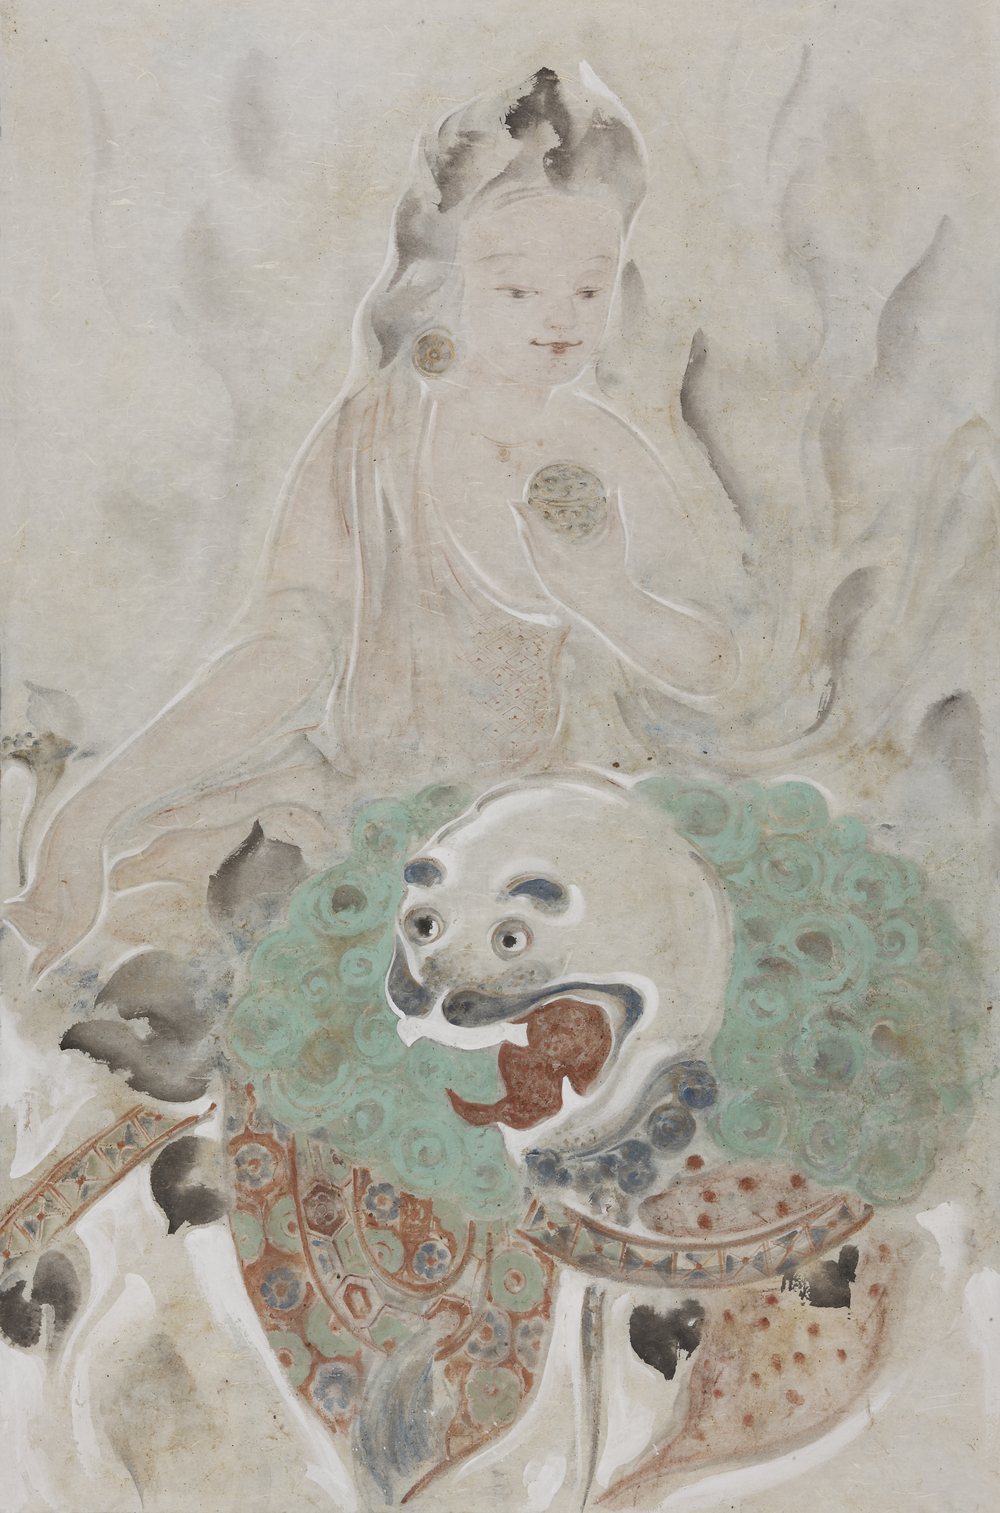 Pan Wenxun 潘汶汛, Green Lion 3 绿狮之三, 2012, Chinese ink and mineral color on rice paper 纸本水墨设色, 146 x 96 cm